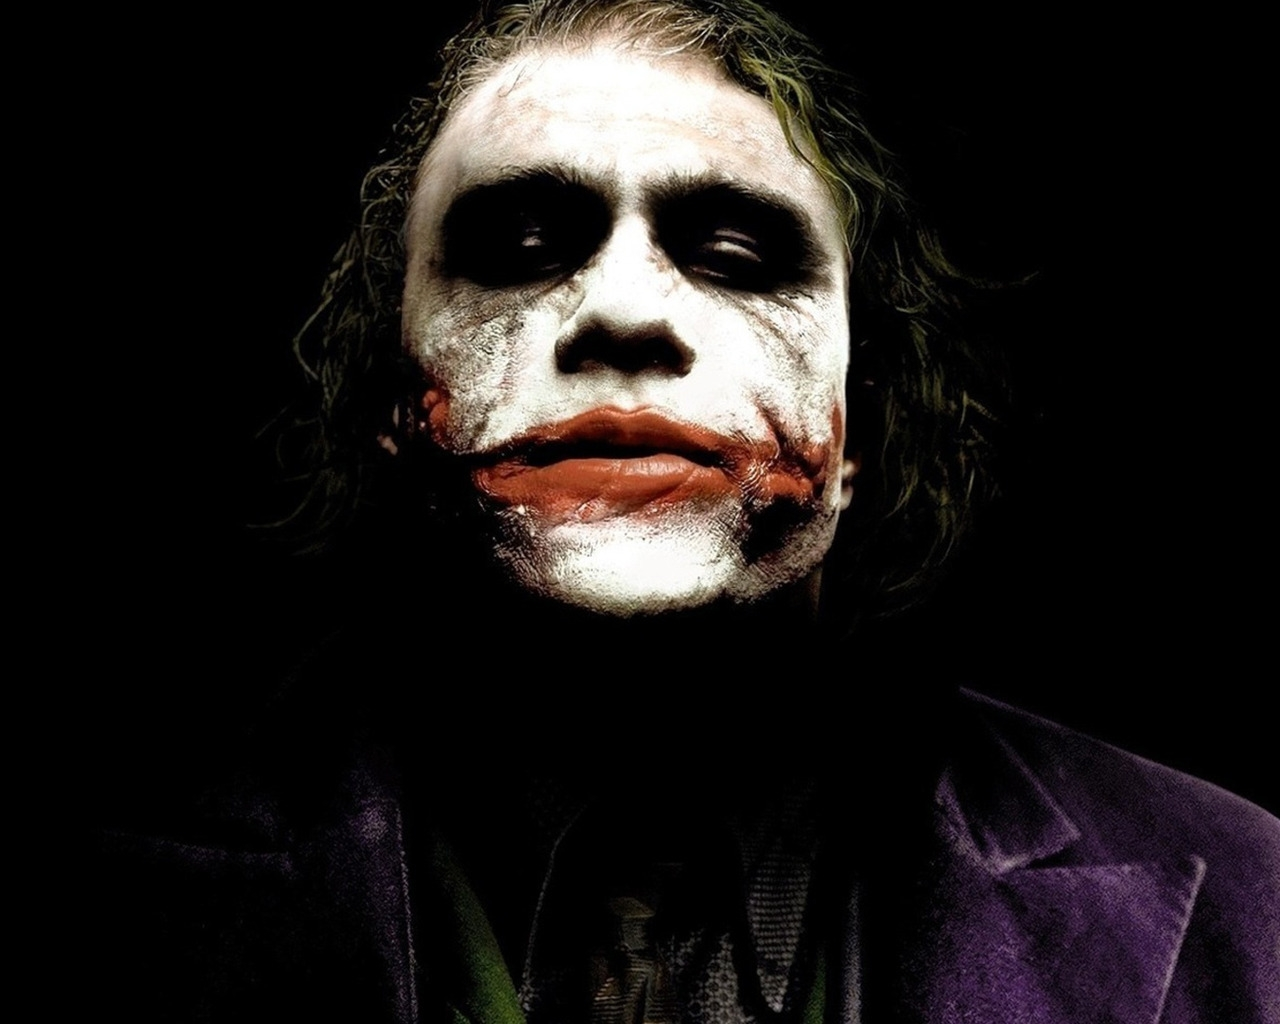 Heath Ledger The Joker for 1280 x 1024 resolution